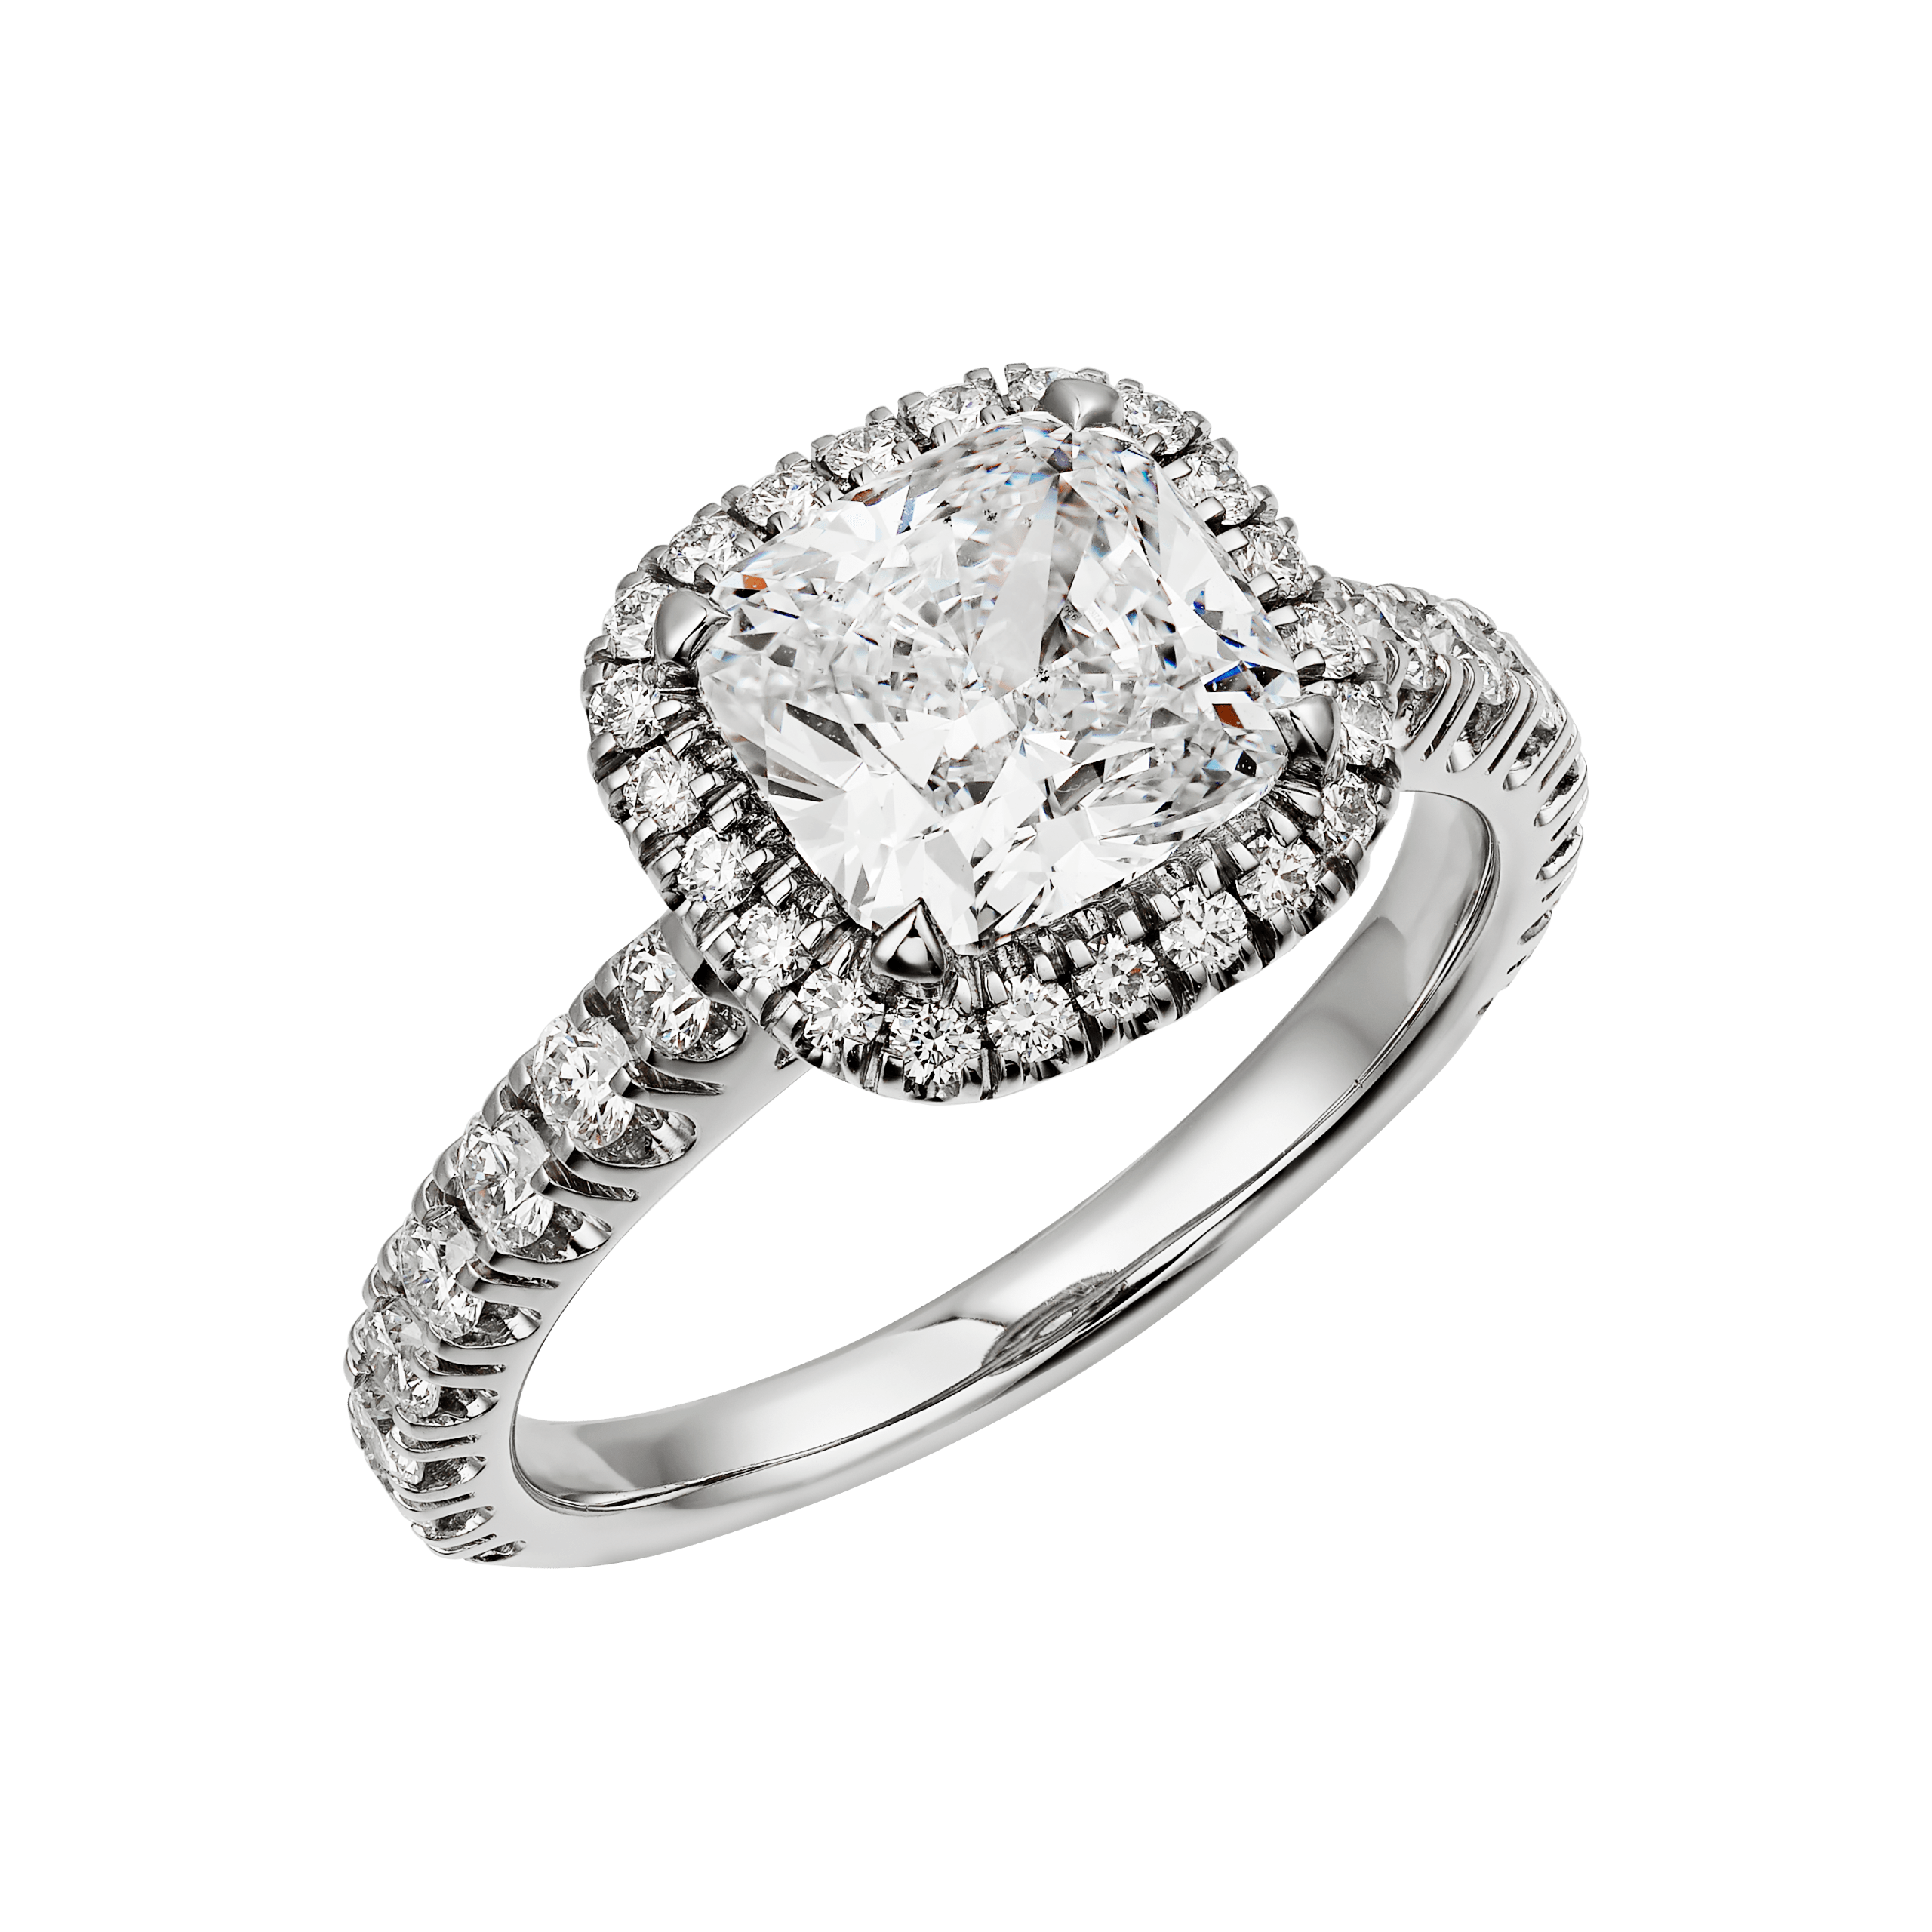 35 Best Cushion Cut Diamond Engagement Rings For Your 2018 Proposal